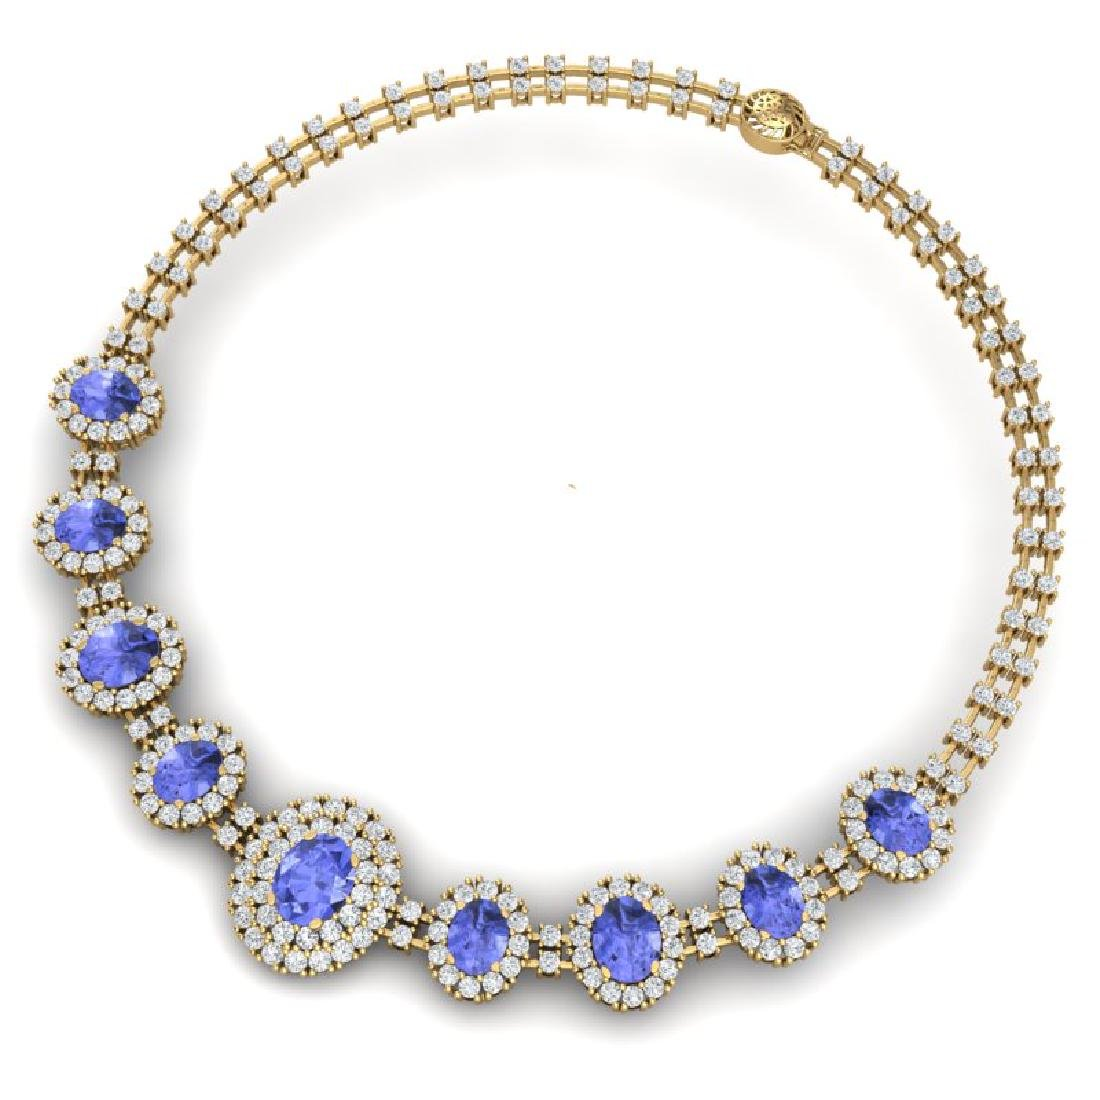 46.51 CTW Royalty Tanzanite & VS Diamond Necklace 18K - 3